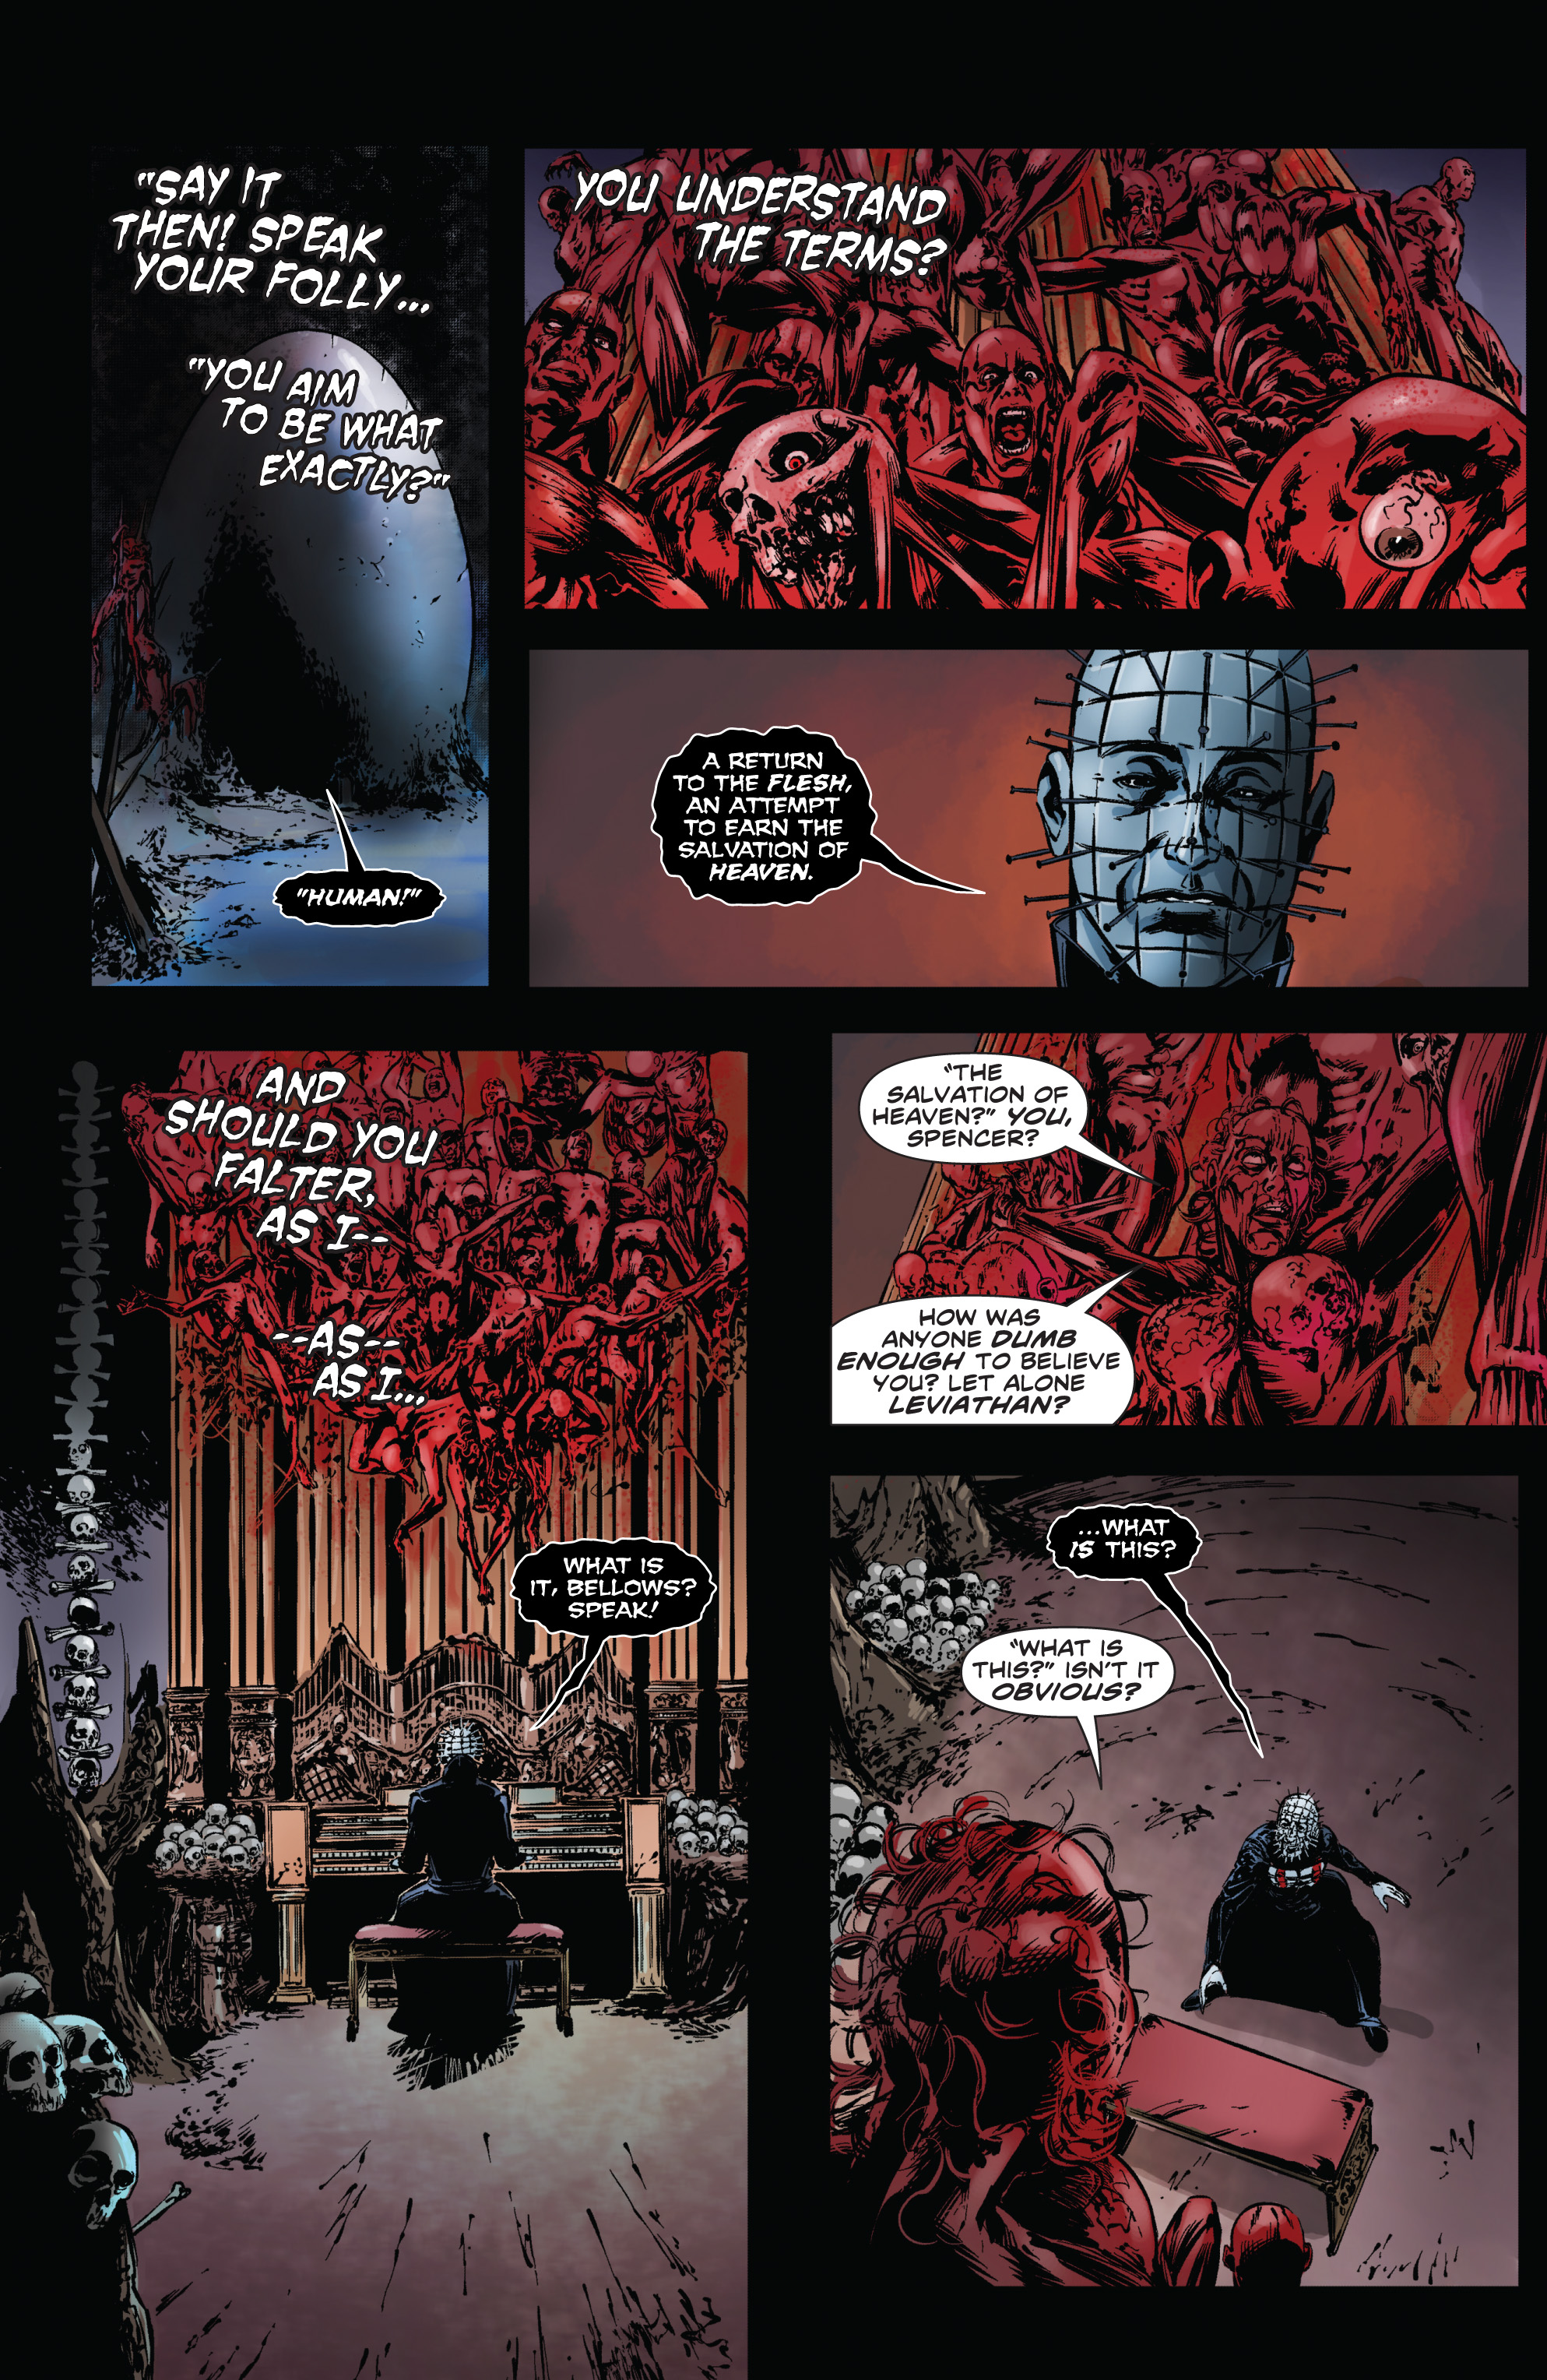 Read online Clive Barker's Hellraiser: The Dark Watch comic -  Issue # TPB 1 - 58